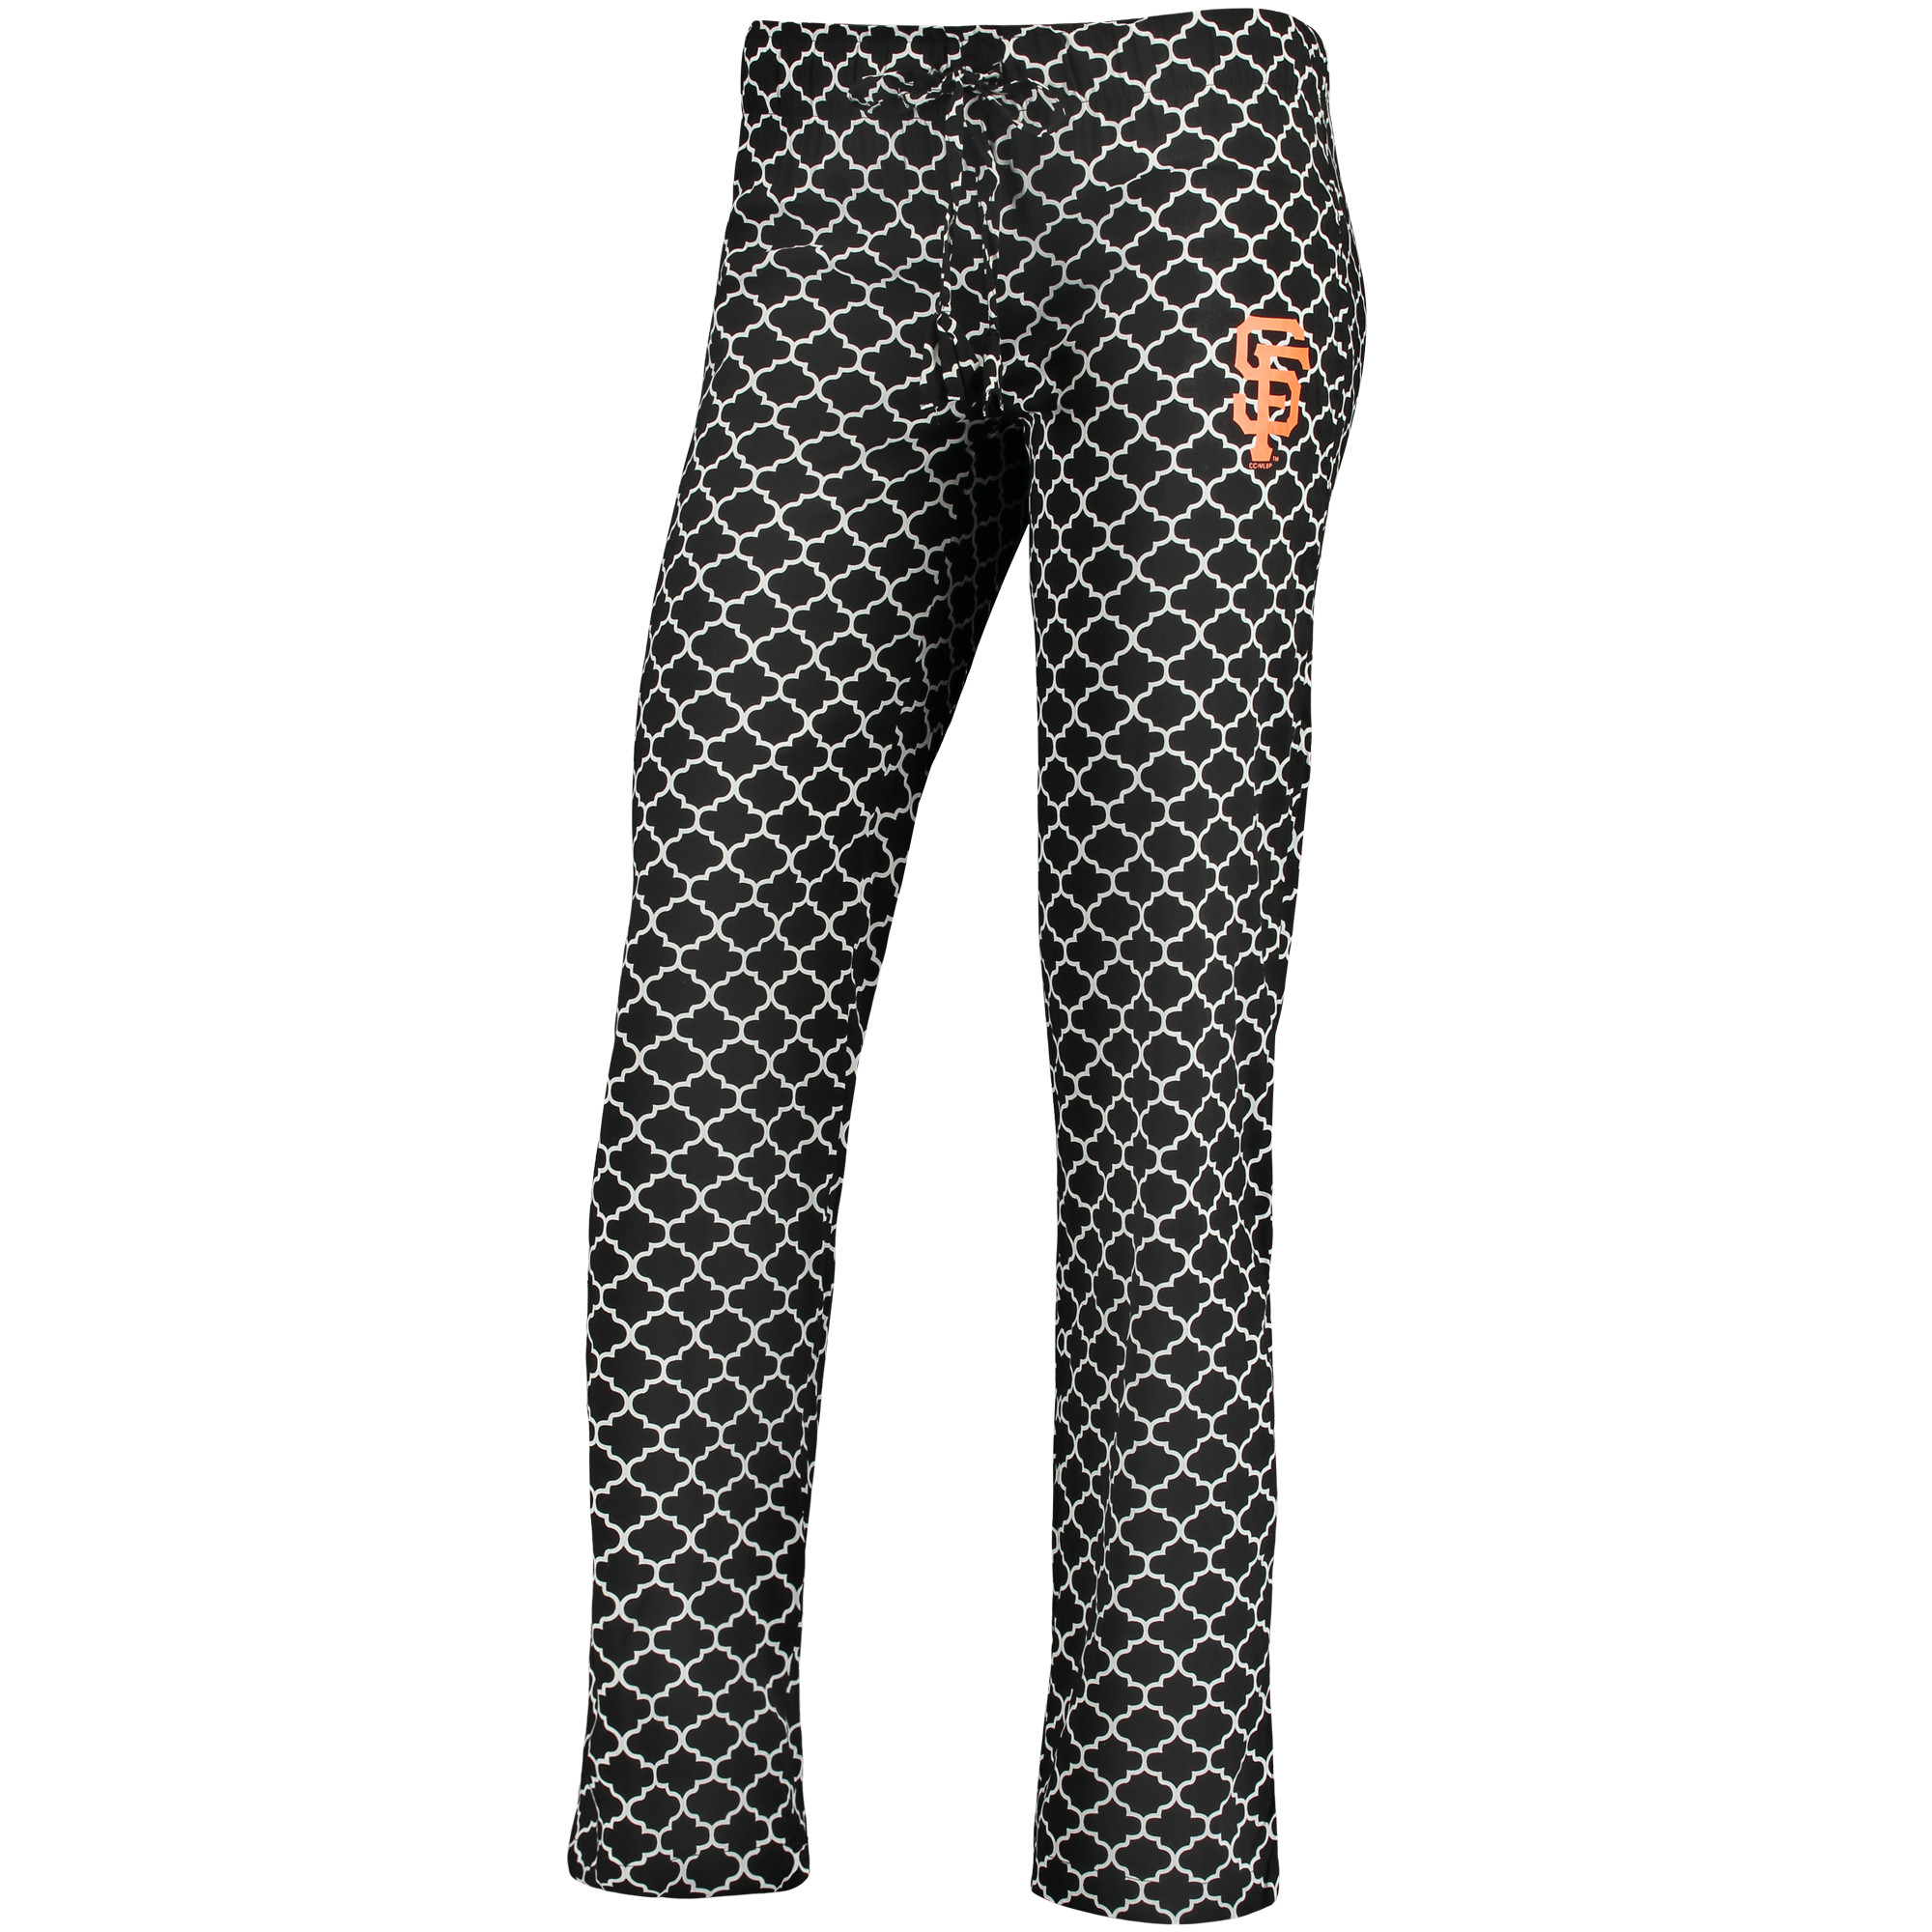 San Francisco Giants Concepts Sport Women's Slumber Sleep Pants - Black/White